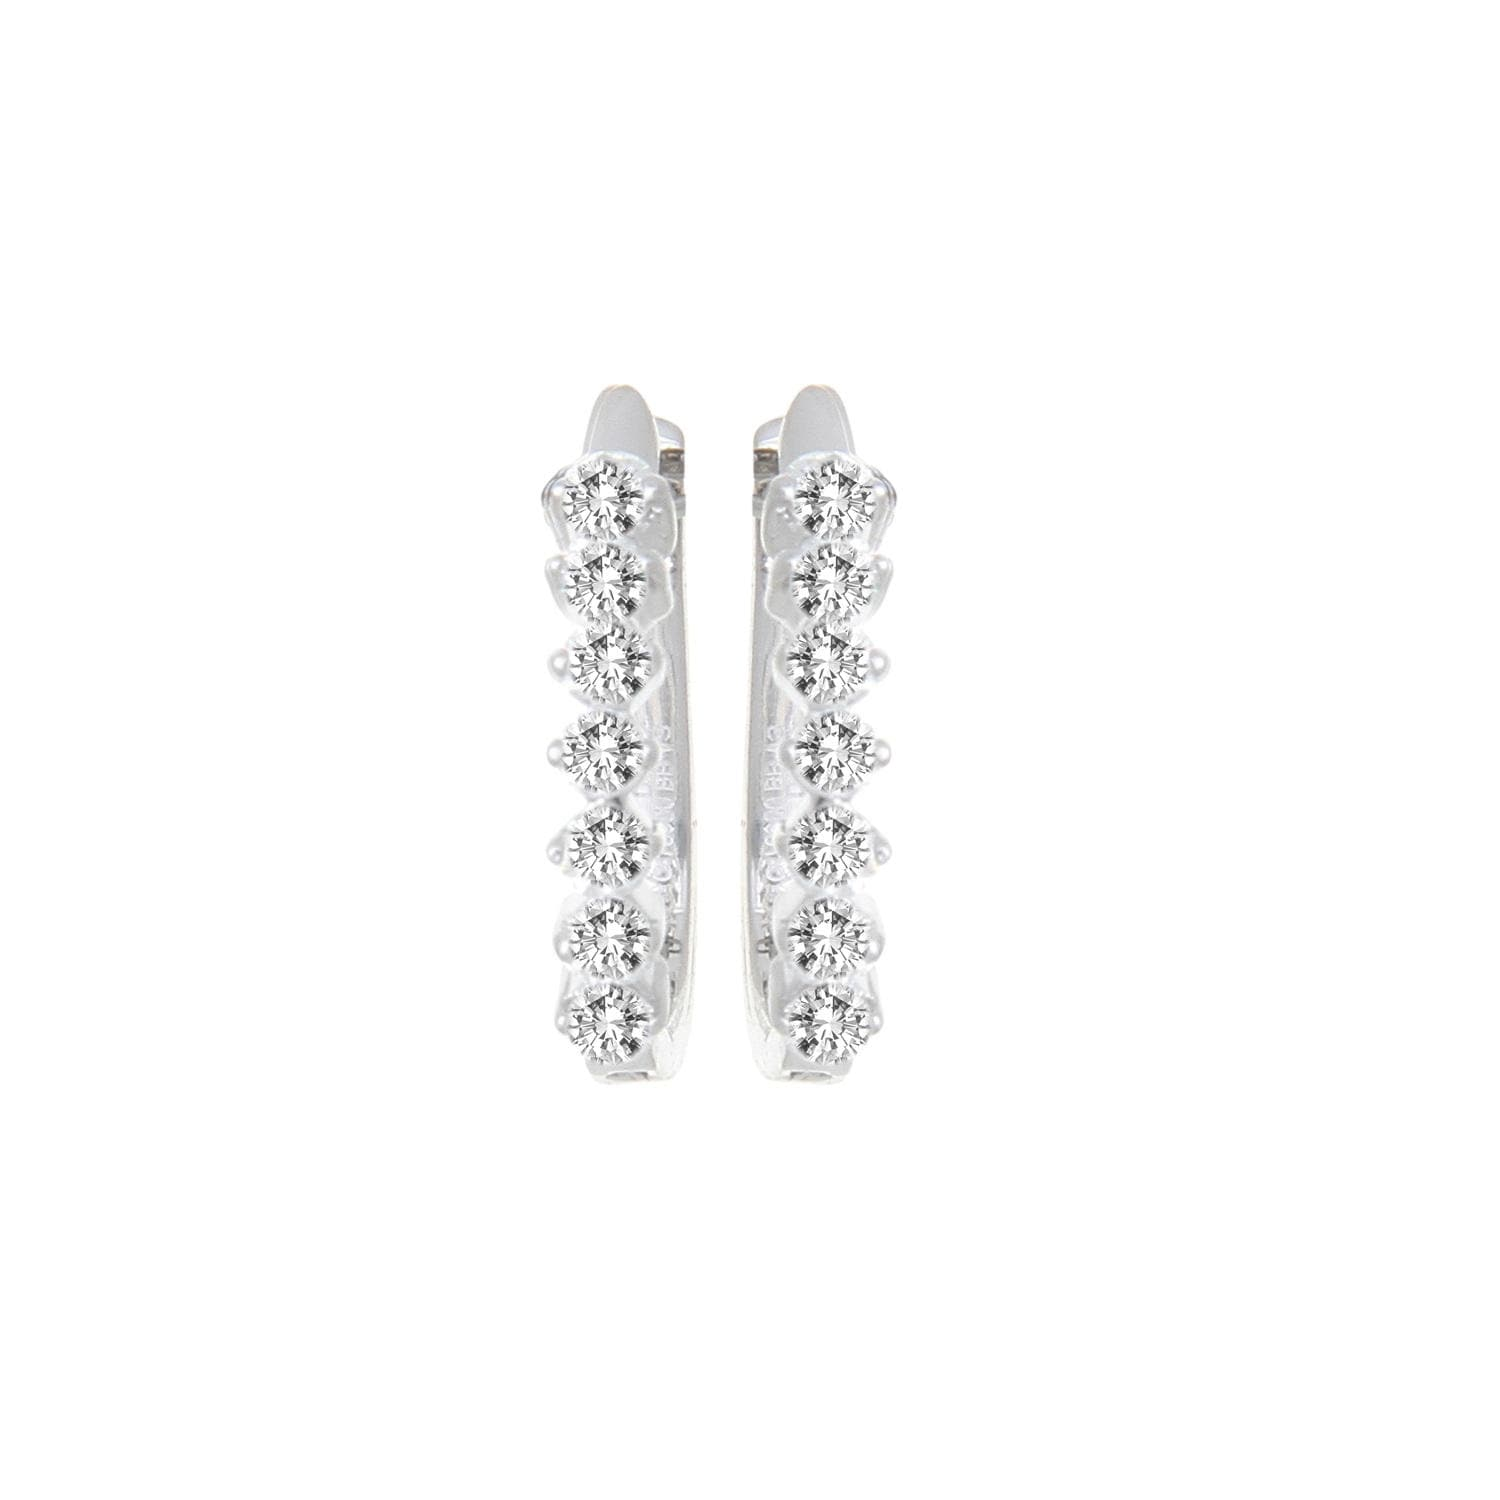 earrings opulent jewelry diamond jewelers graff platinum jewellery waterfall